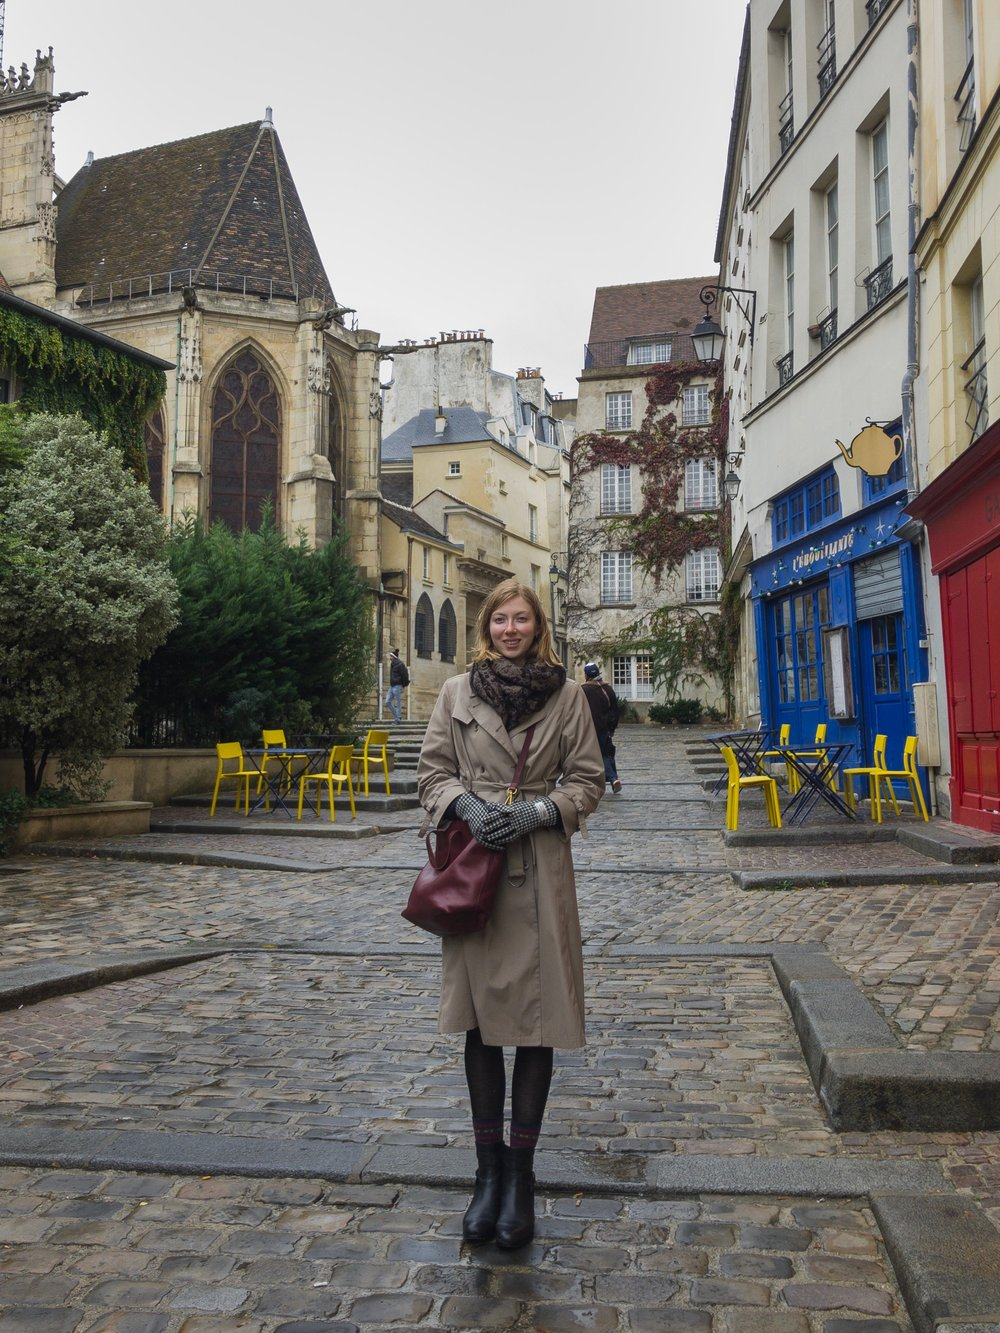 The trench was necessary for a rainy day in the Marais.